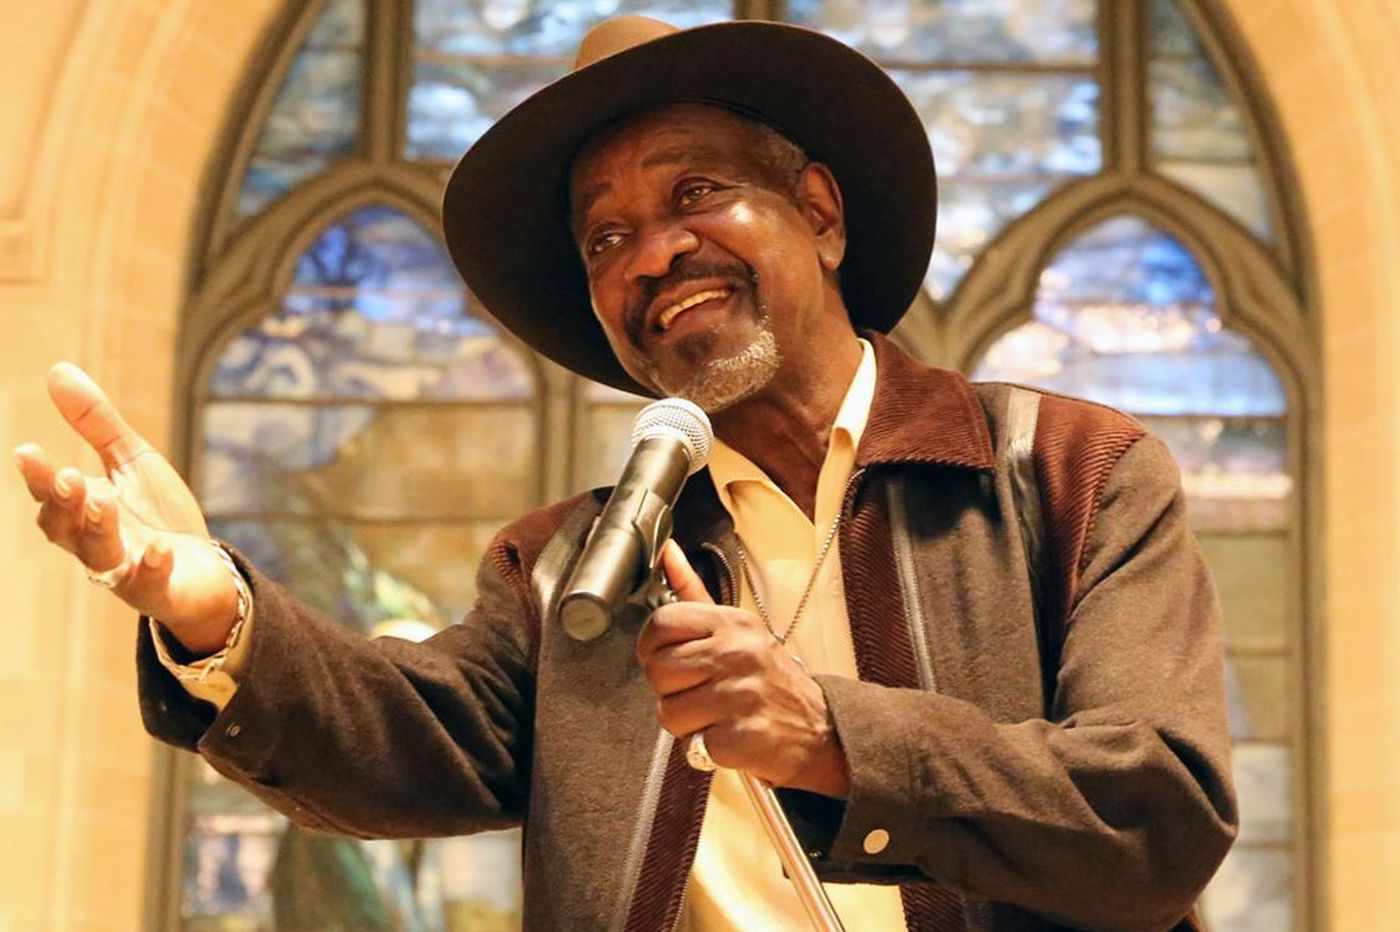 Frank Bey, Philly blues singer whose Georgia roots fueled his vocals, dies at 74